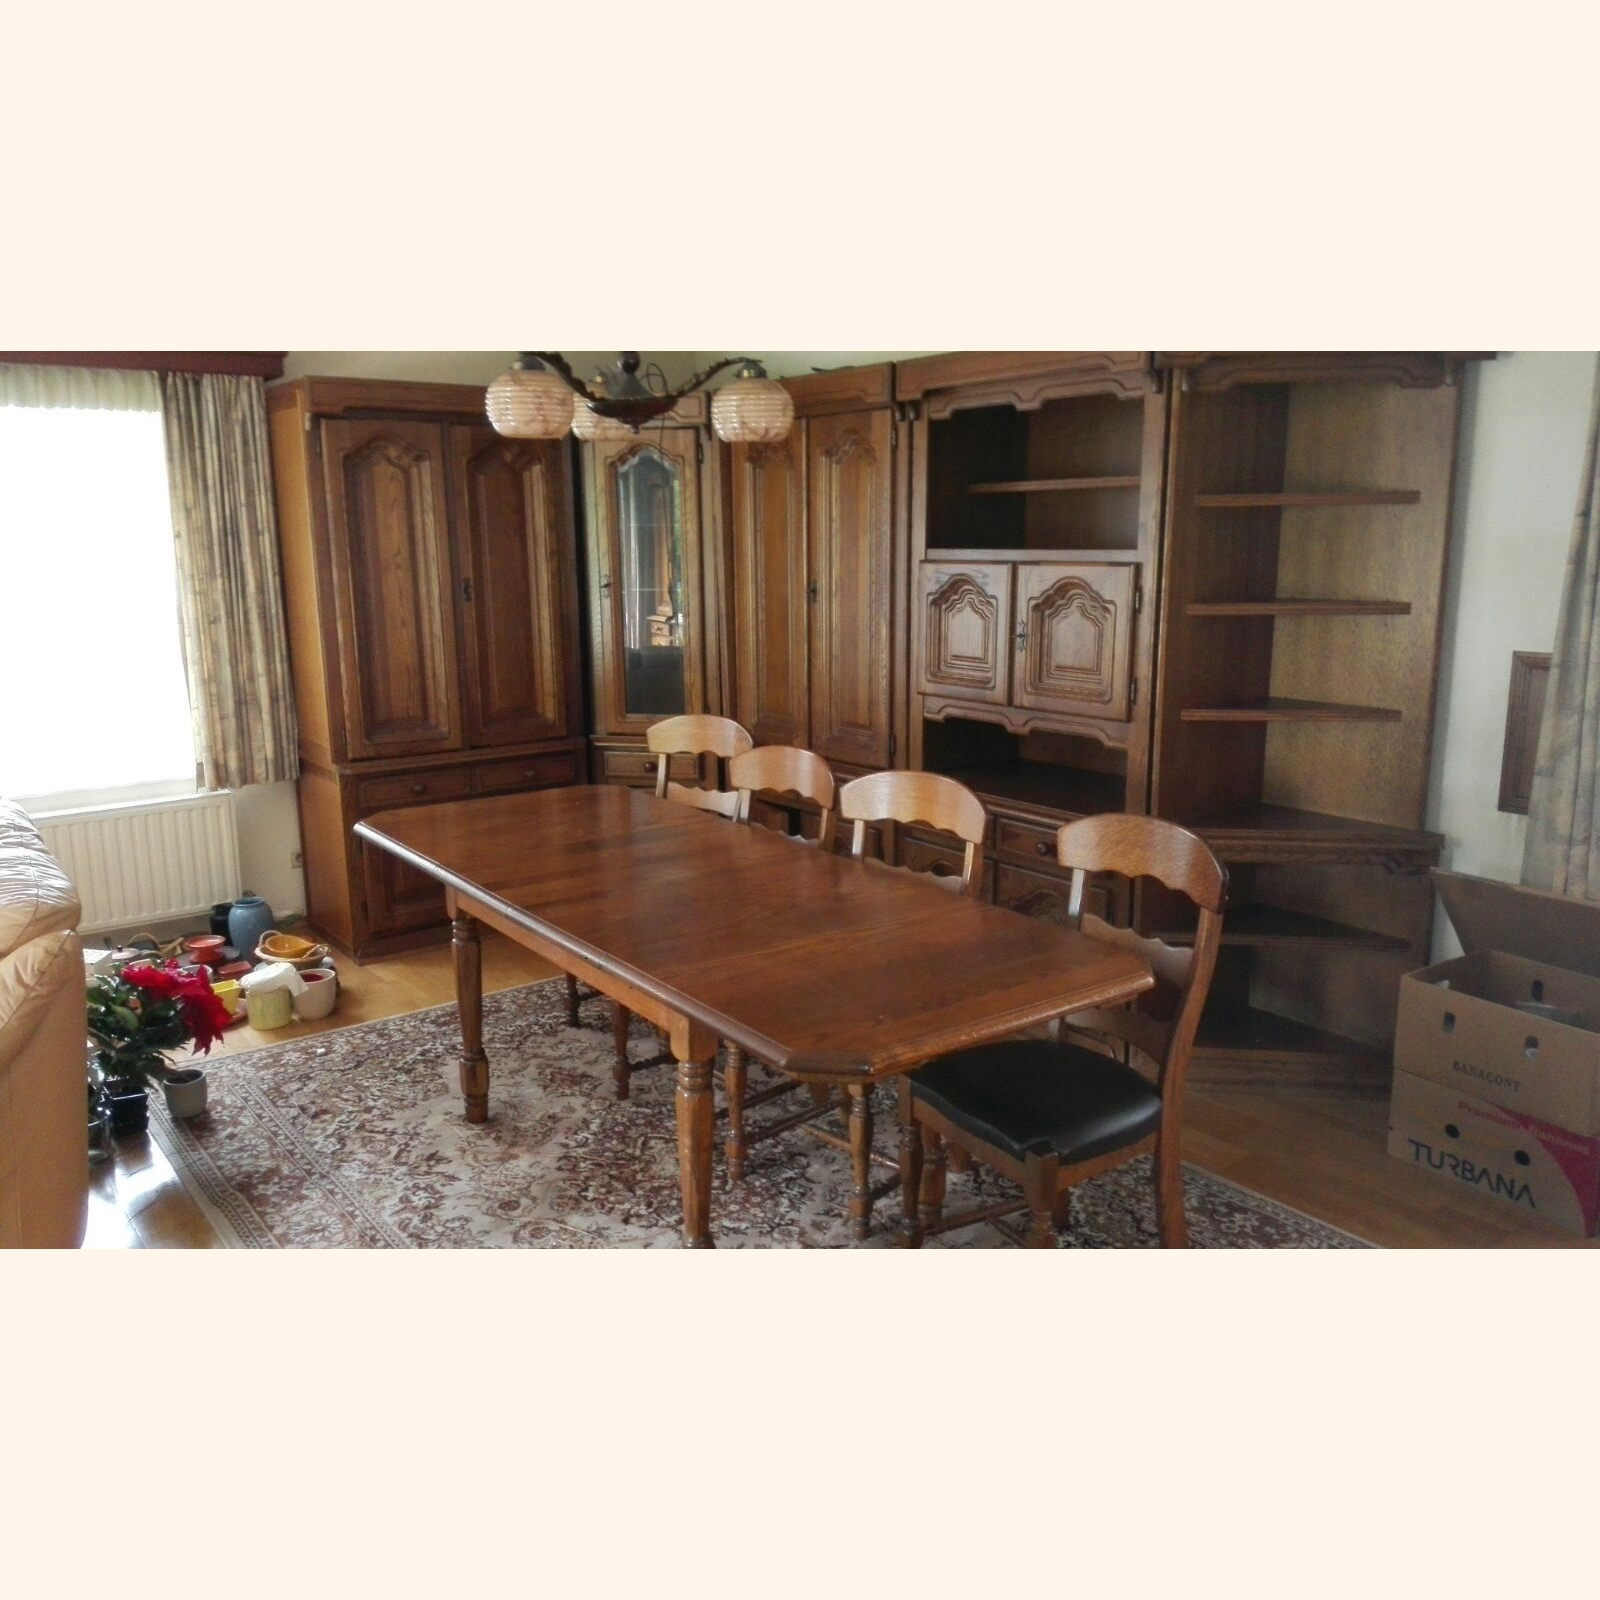 A Dining Room Furniture Sets Mix, Used Wood Dining Room Set